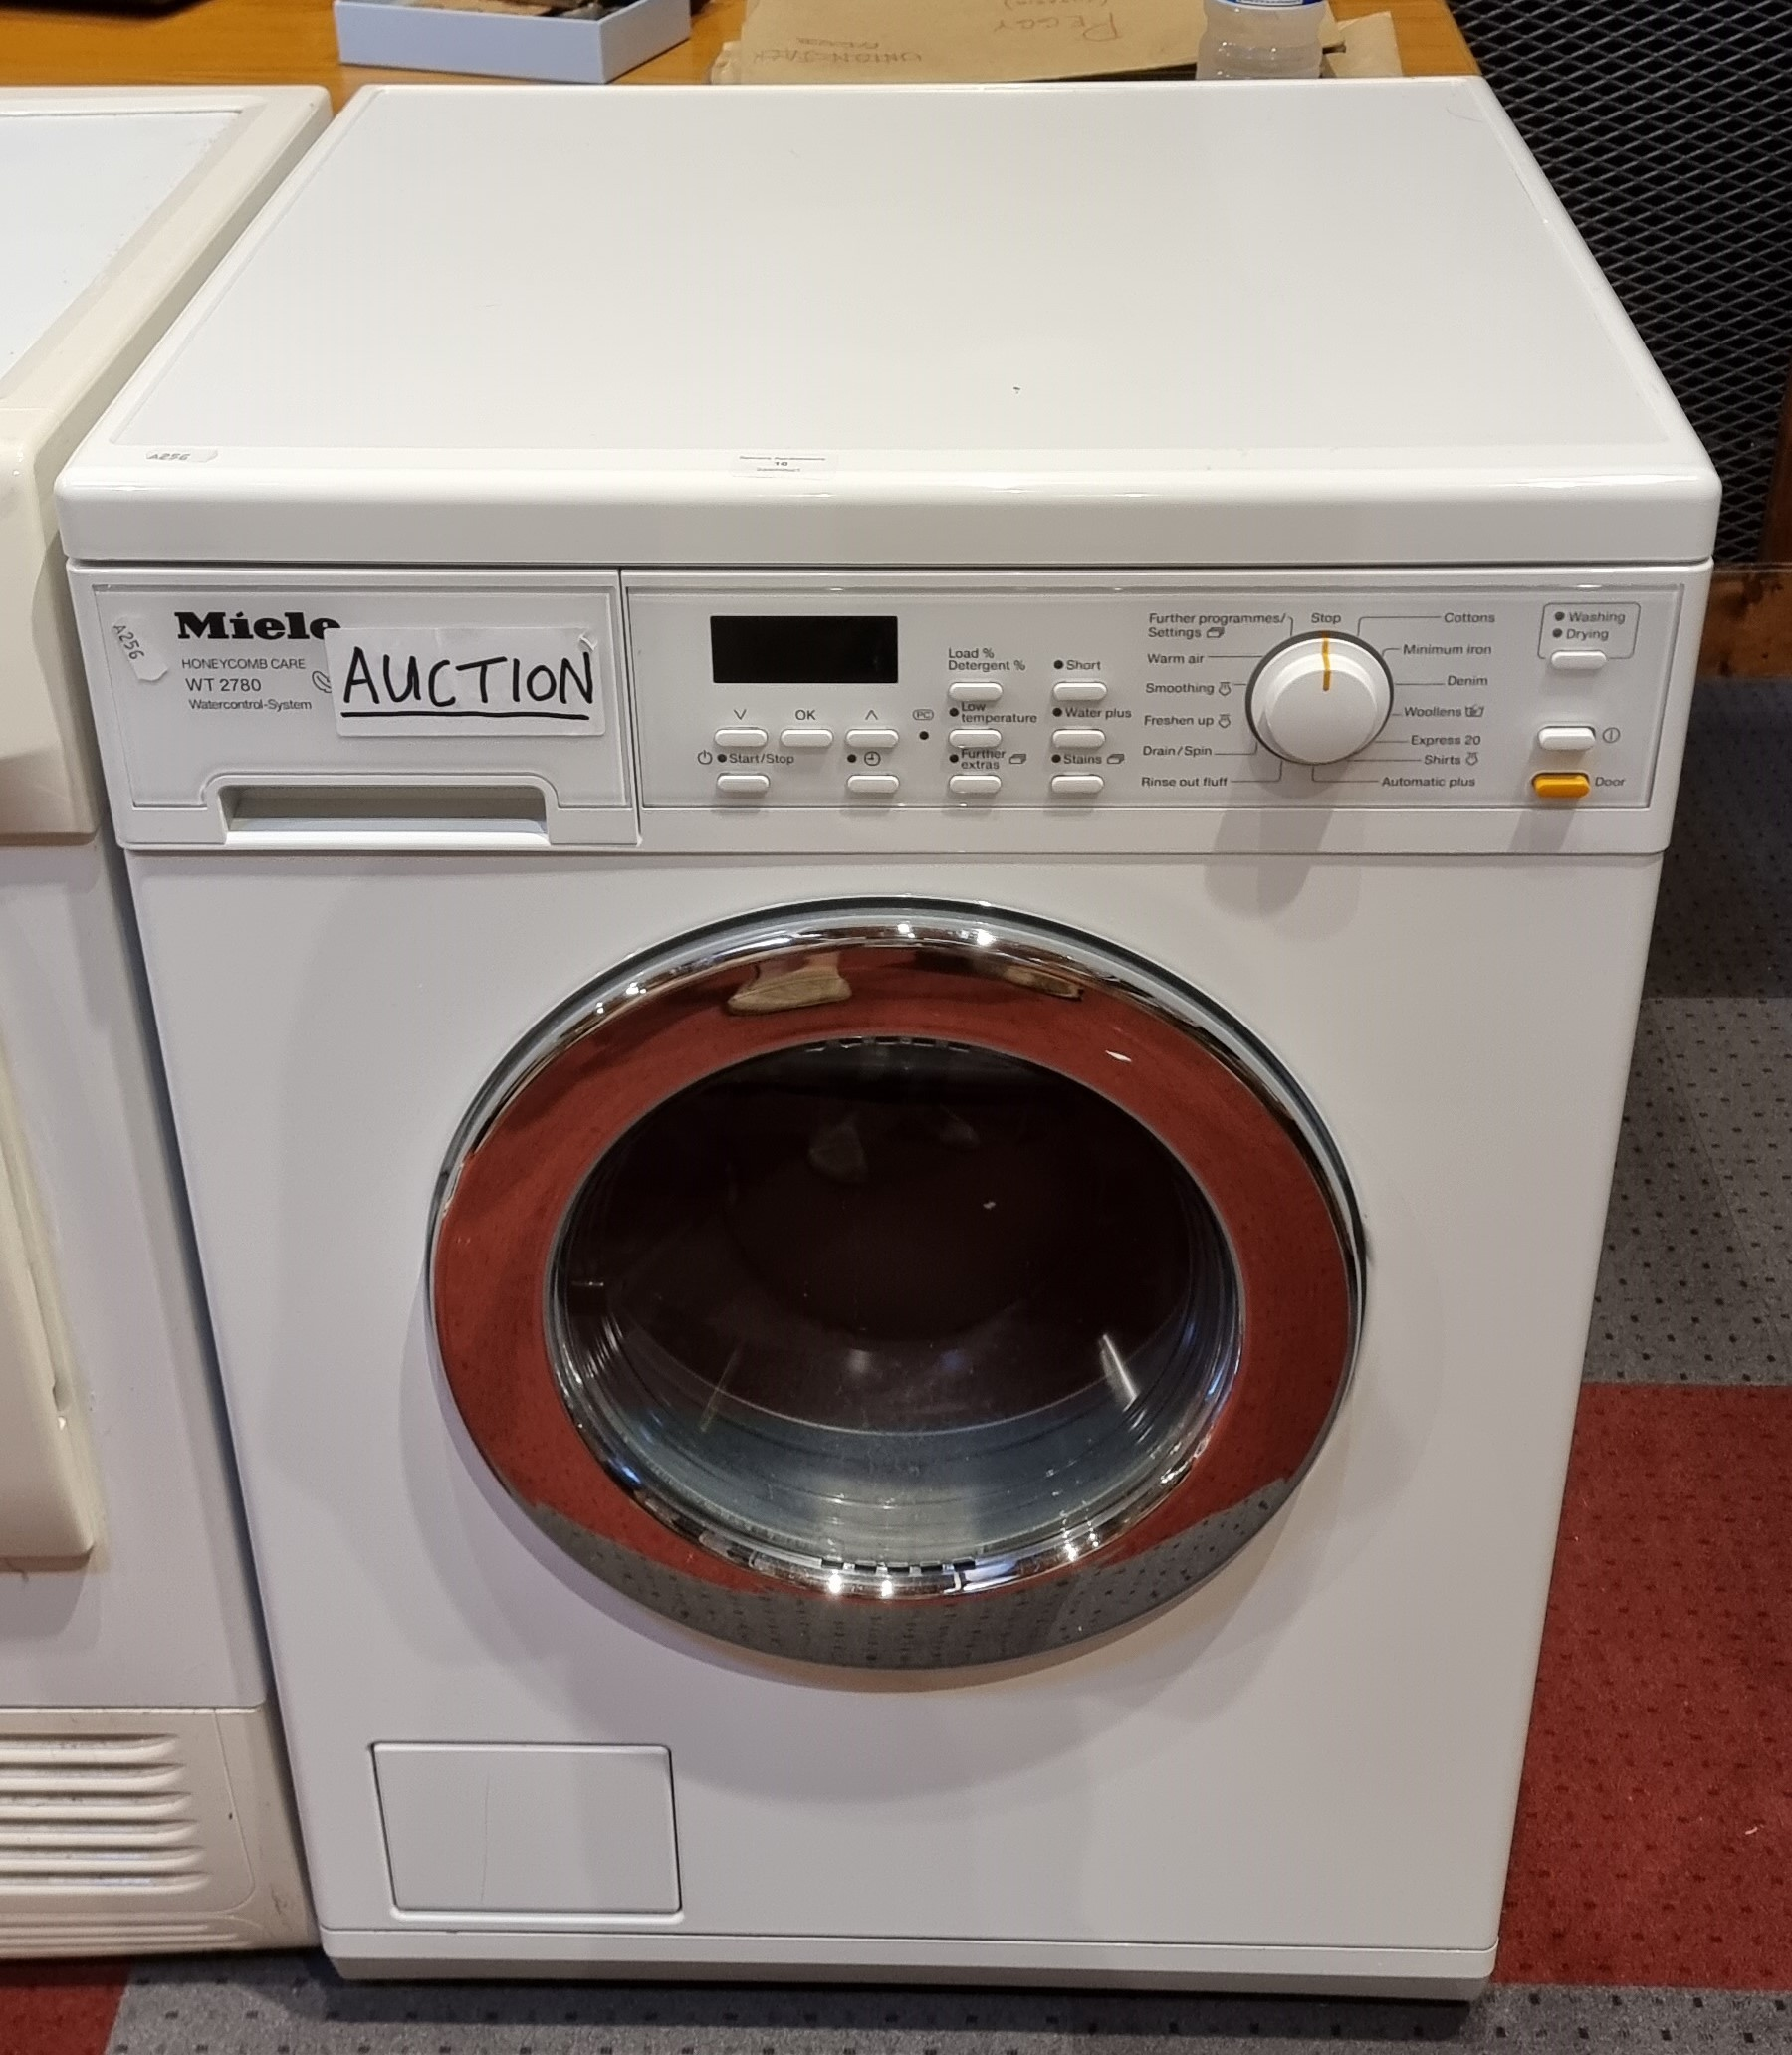 A Miele washing machine, model number WT 2780.